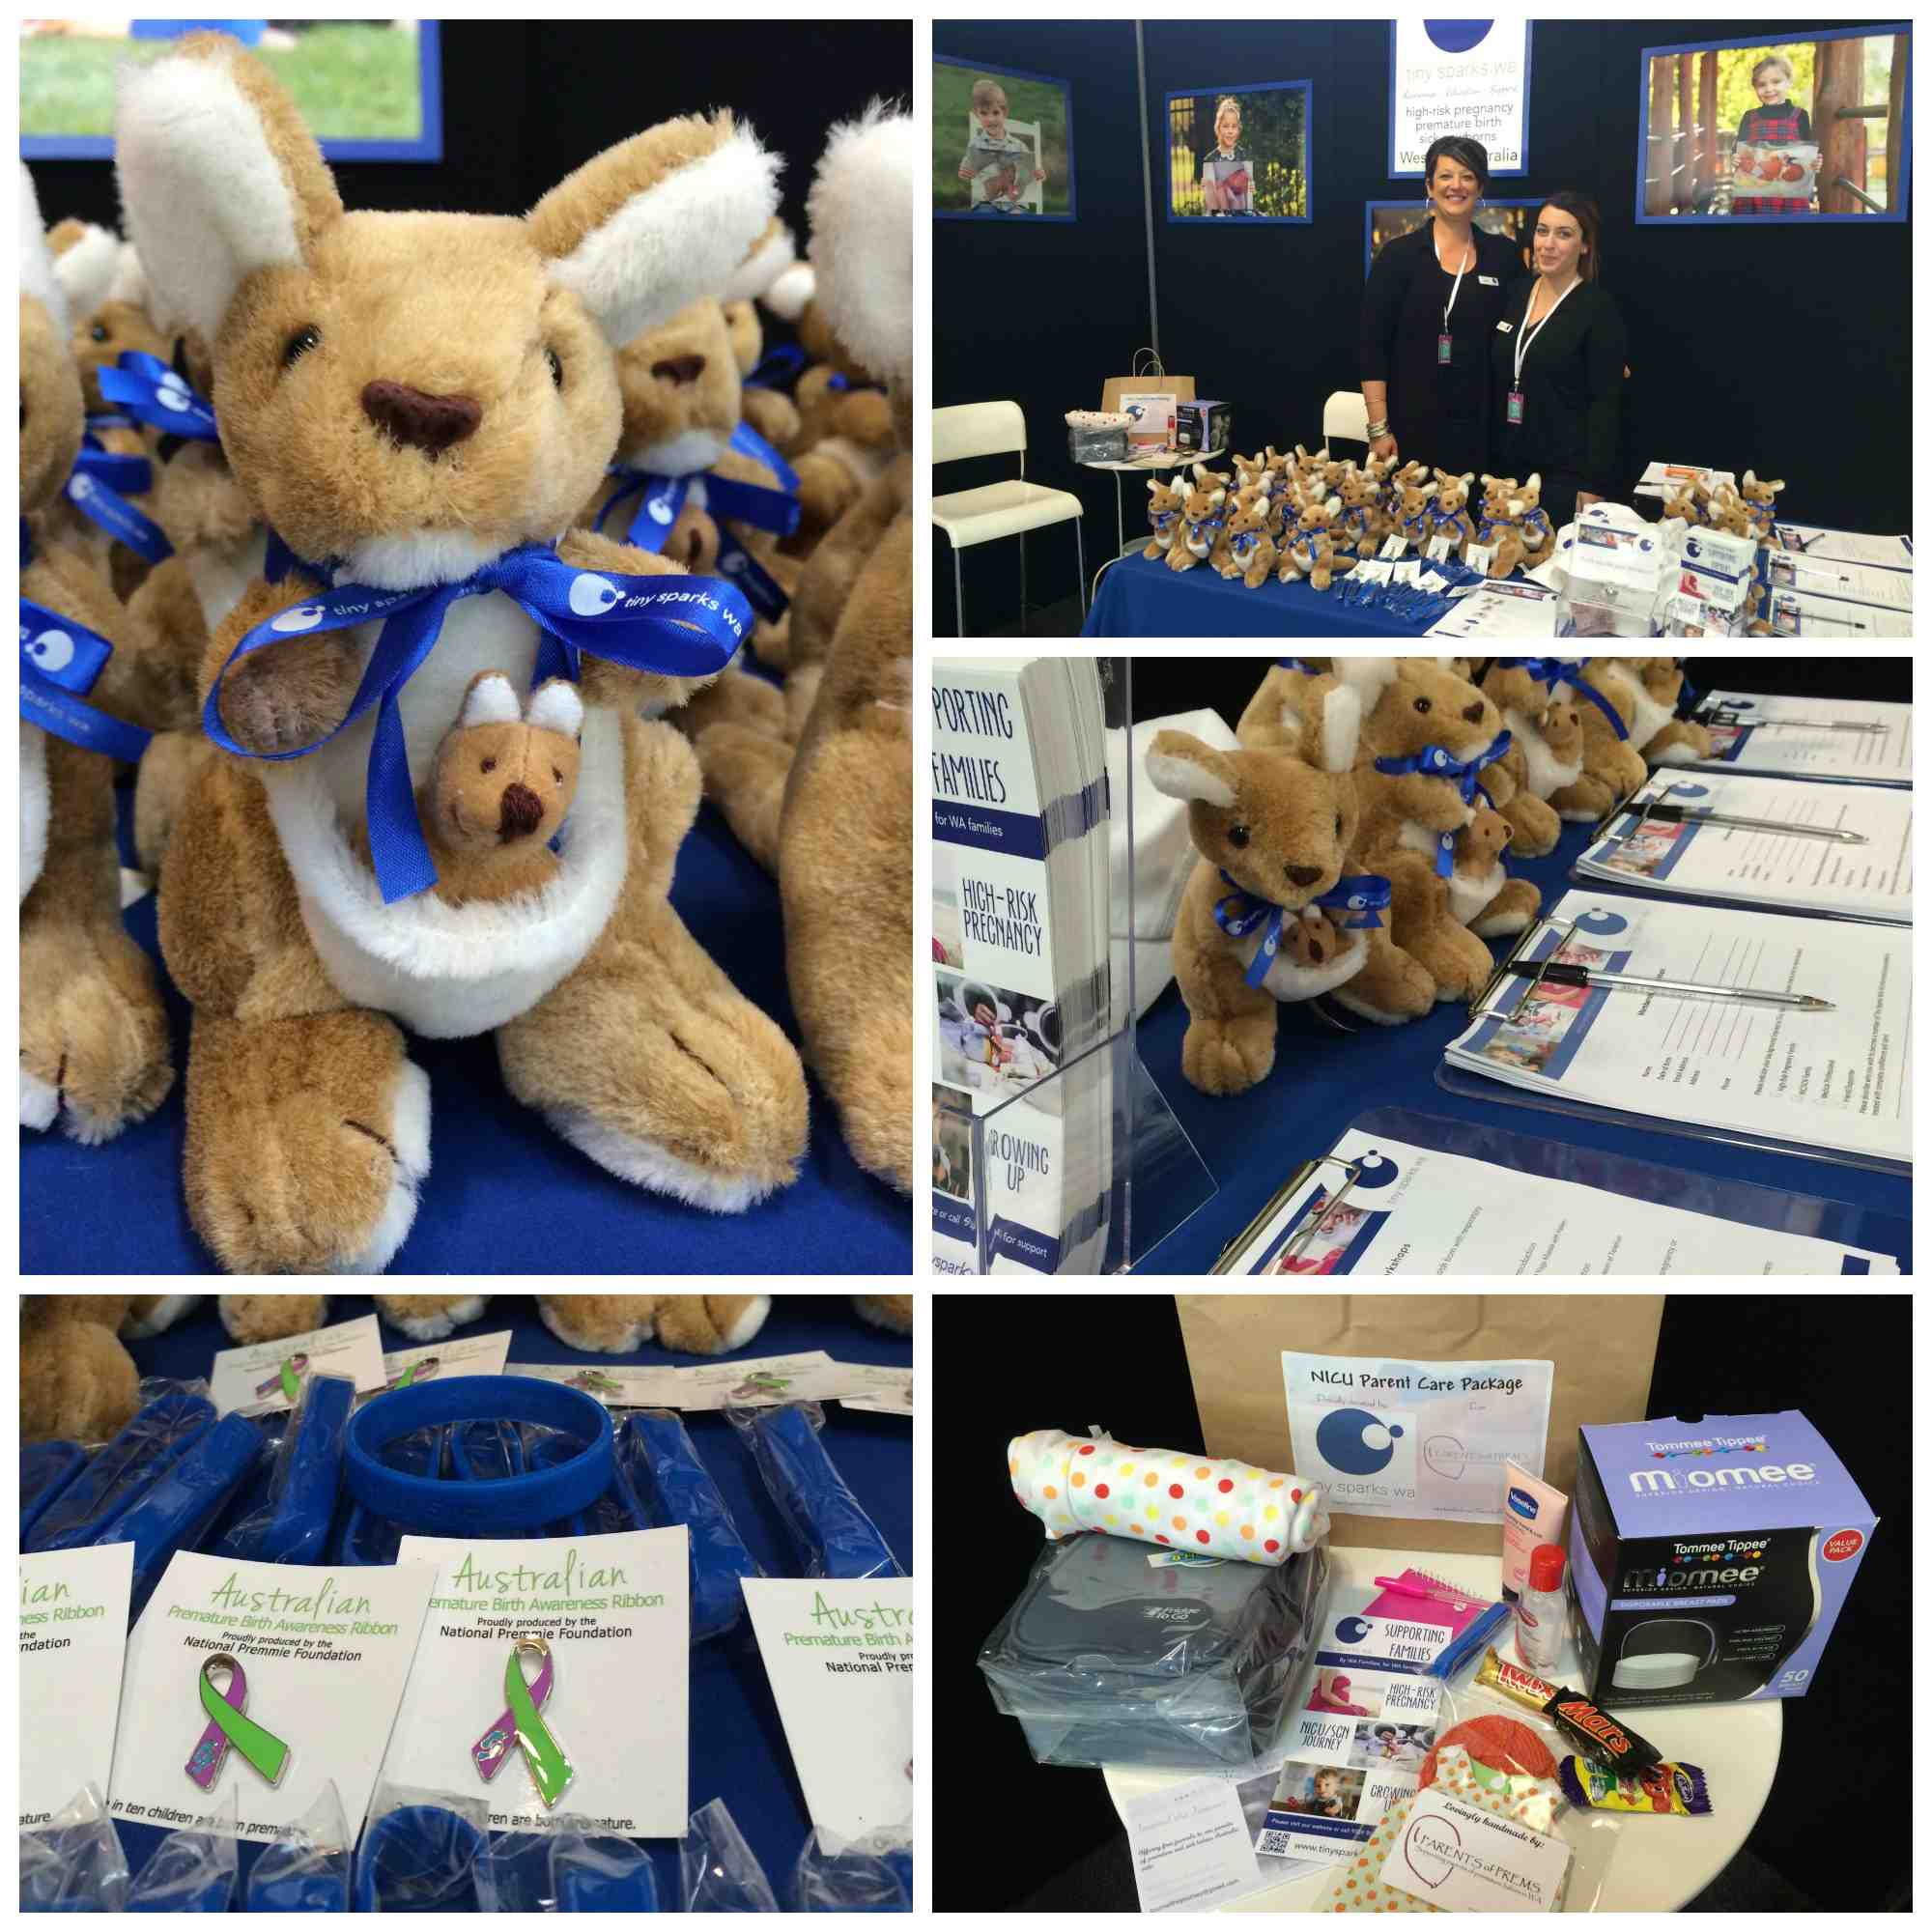 Pregnancy Babies and Childrens Expo 2014